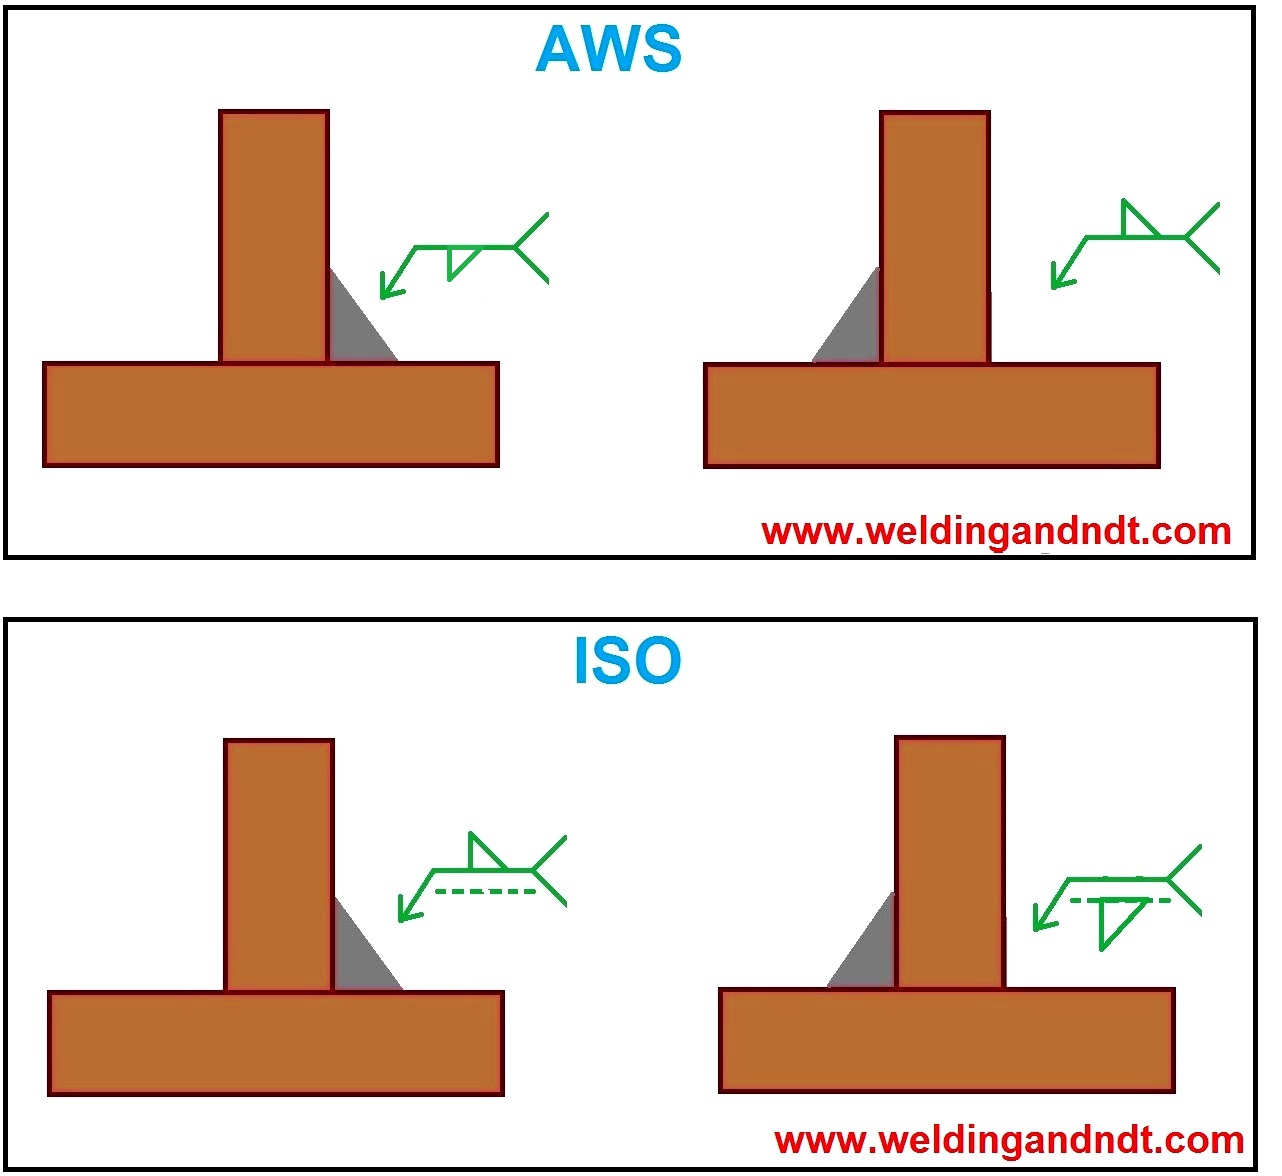 hight resolution of welding symbol for fillet joints aws and iso